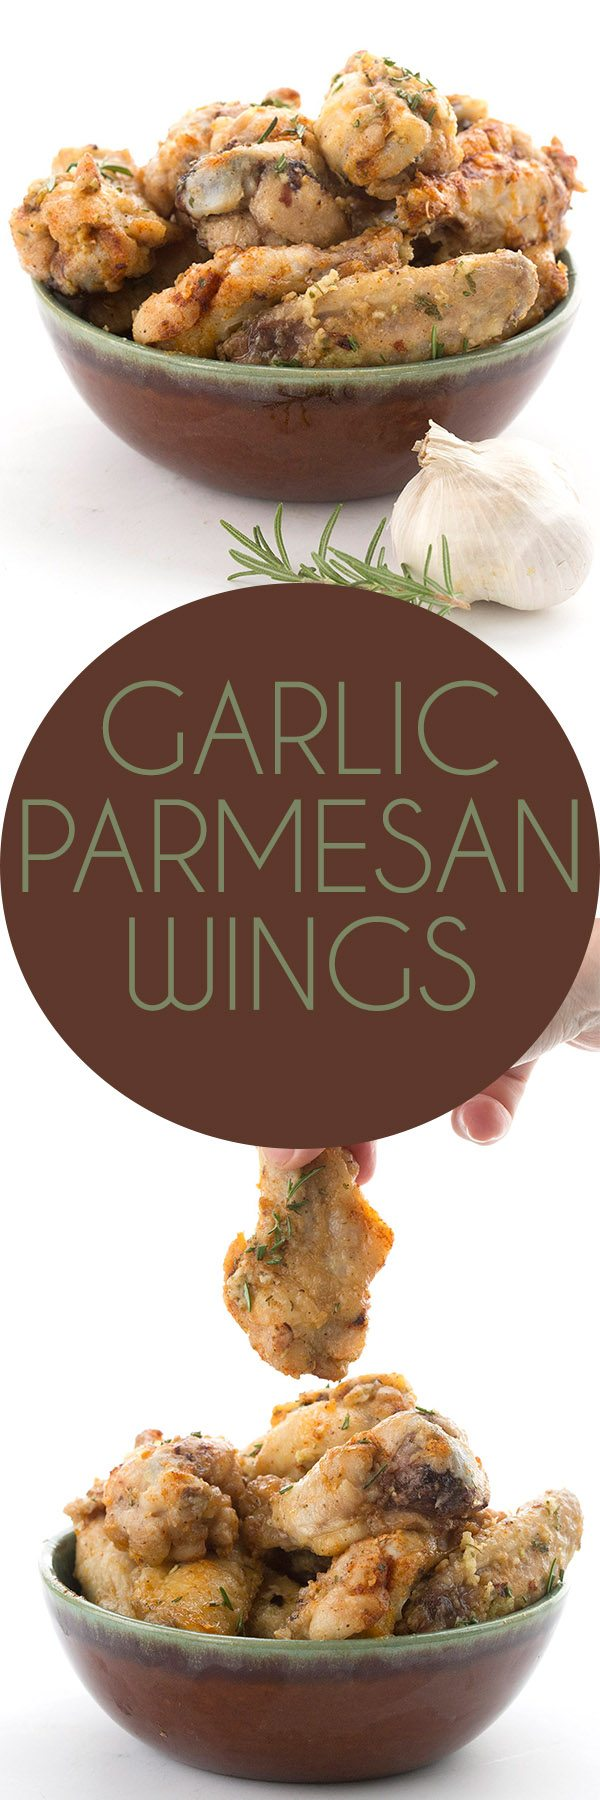 Simply the best keto garlic parmesan wings recipe. Crispy oven baked wings in a buttery garlic parmesan sauce. The best low carb wings you'll ever eat! #lowcarb #chickenwings #garlicparmesan #keto #ketodiet